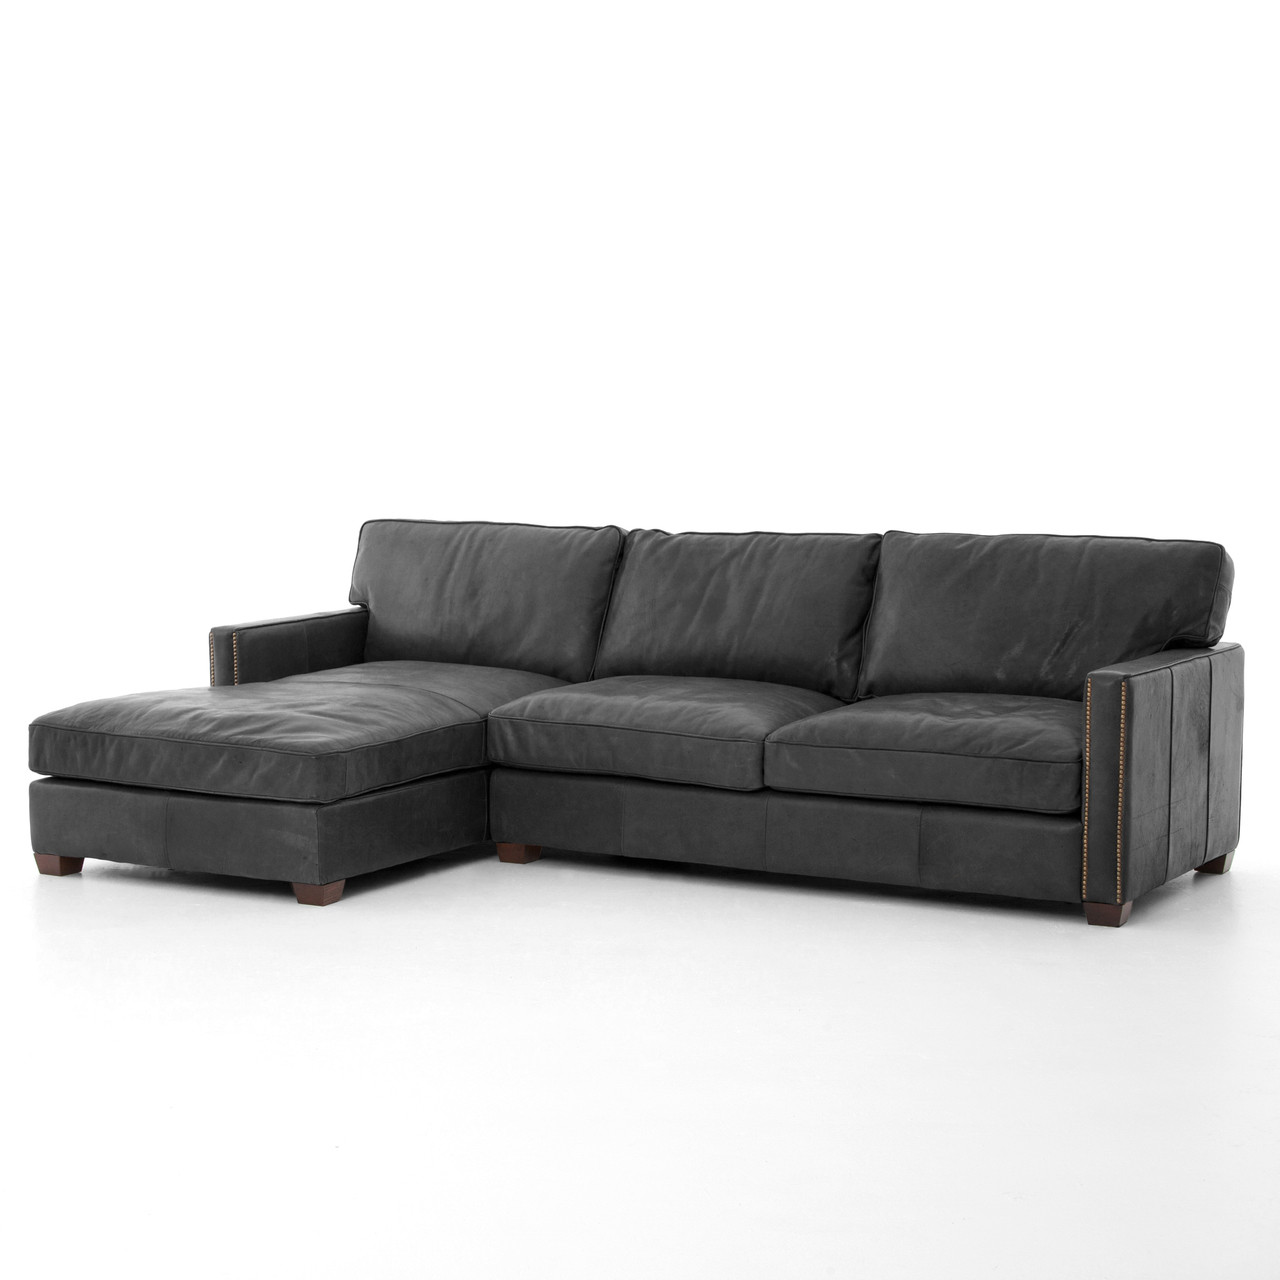 black and white leather sofa collect my free larkin vintage sectional with chaise